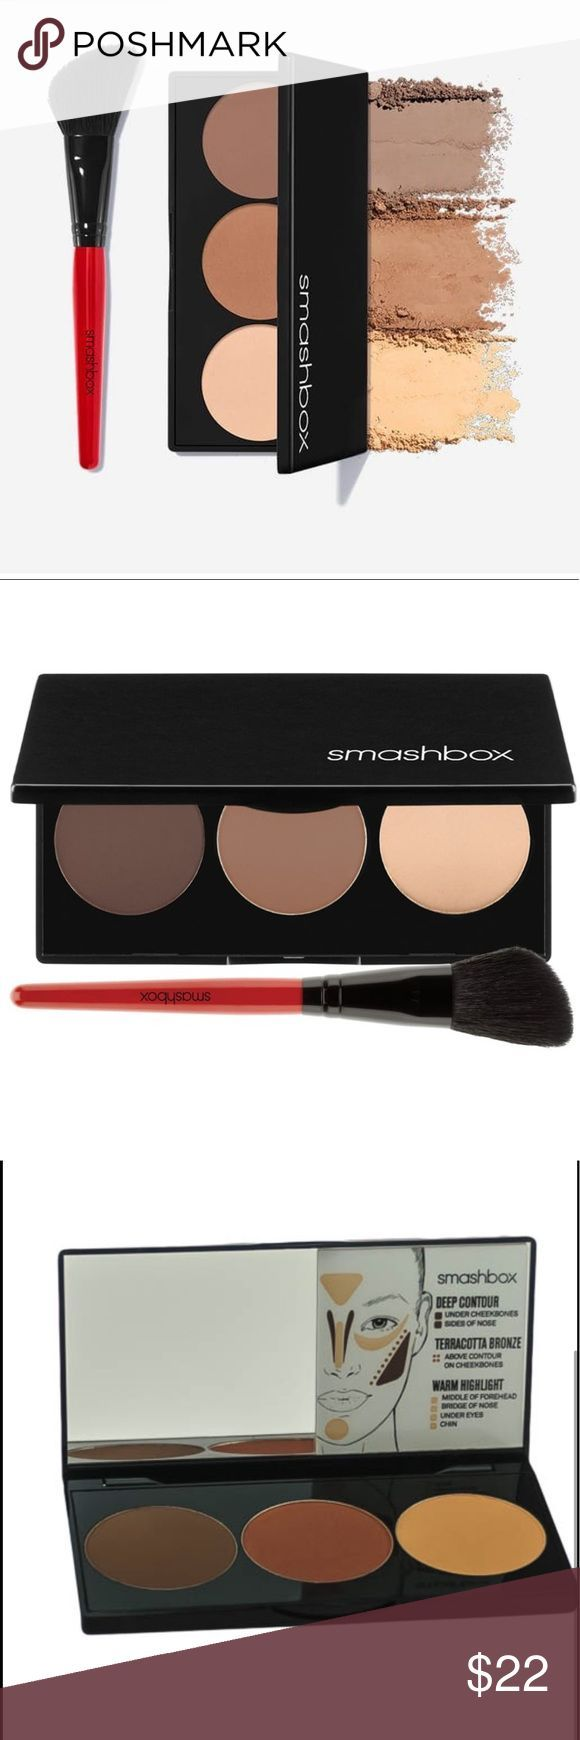 Kit de contorno paso a paso Smashbox Incluye cepillo de contorno Smashbox / BNIB…